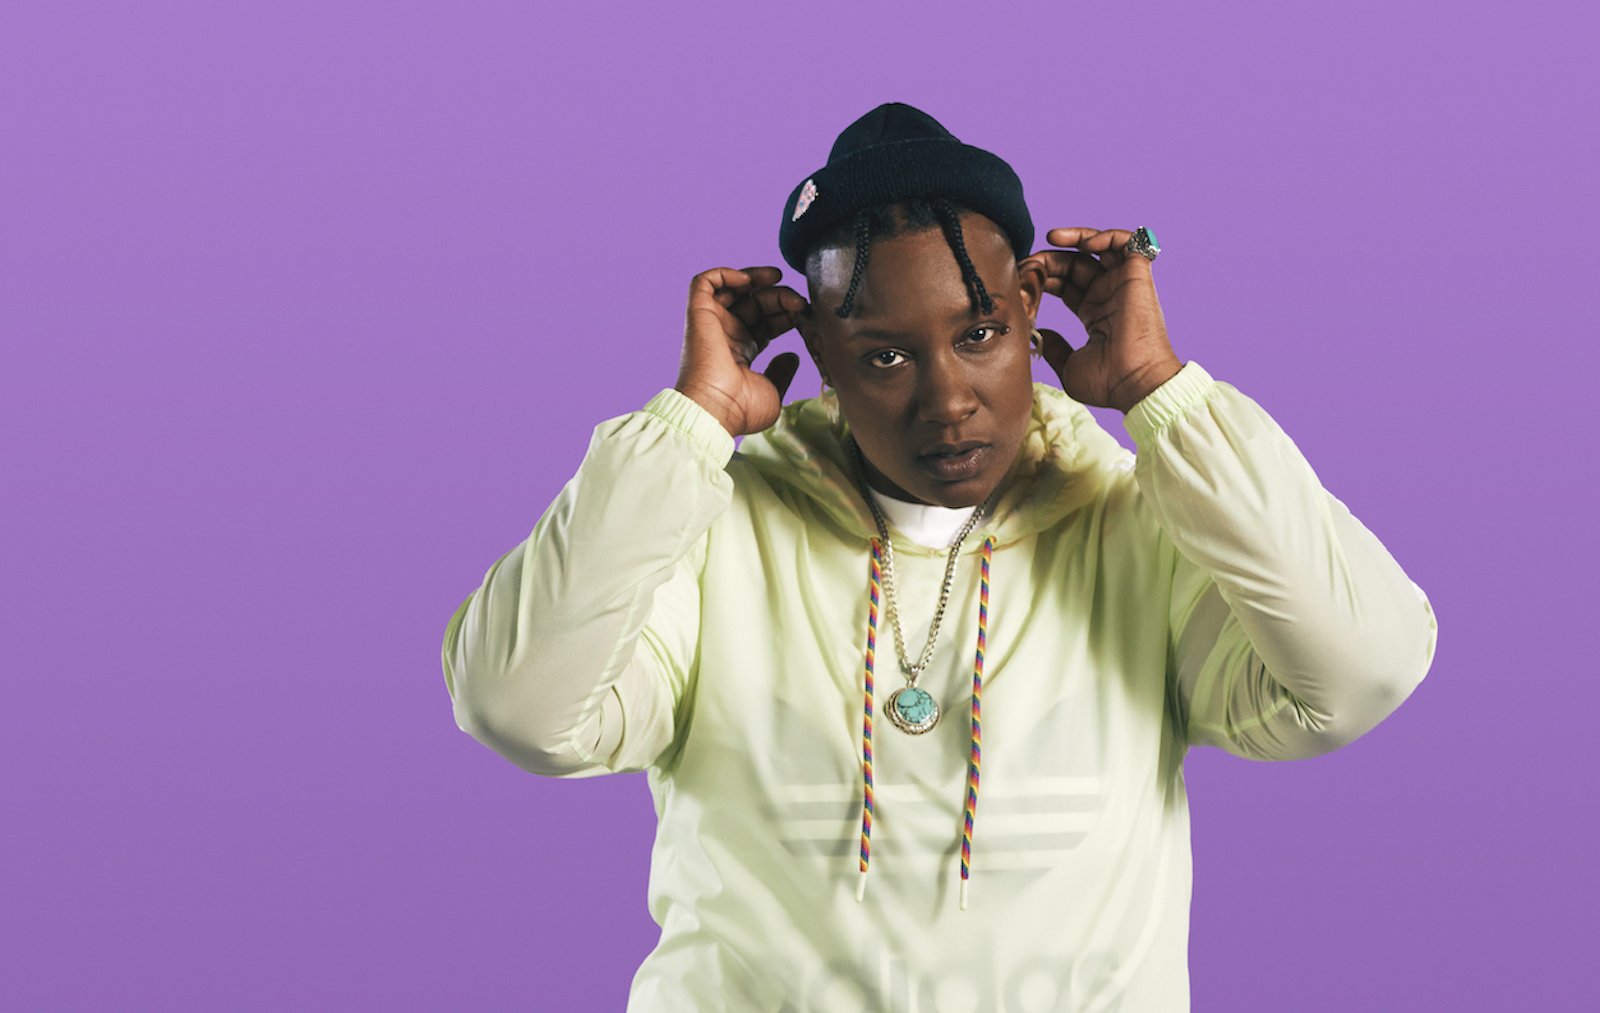 A portrait of the Last Artful, Dodgr, wearing a yellow hoodie, against a purple background.